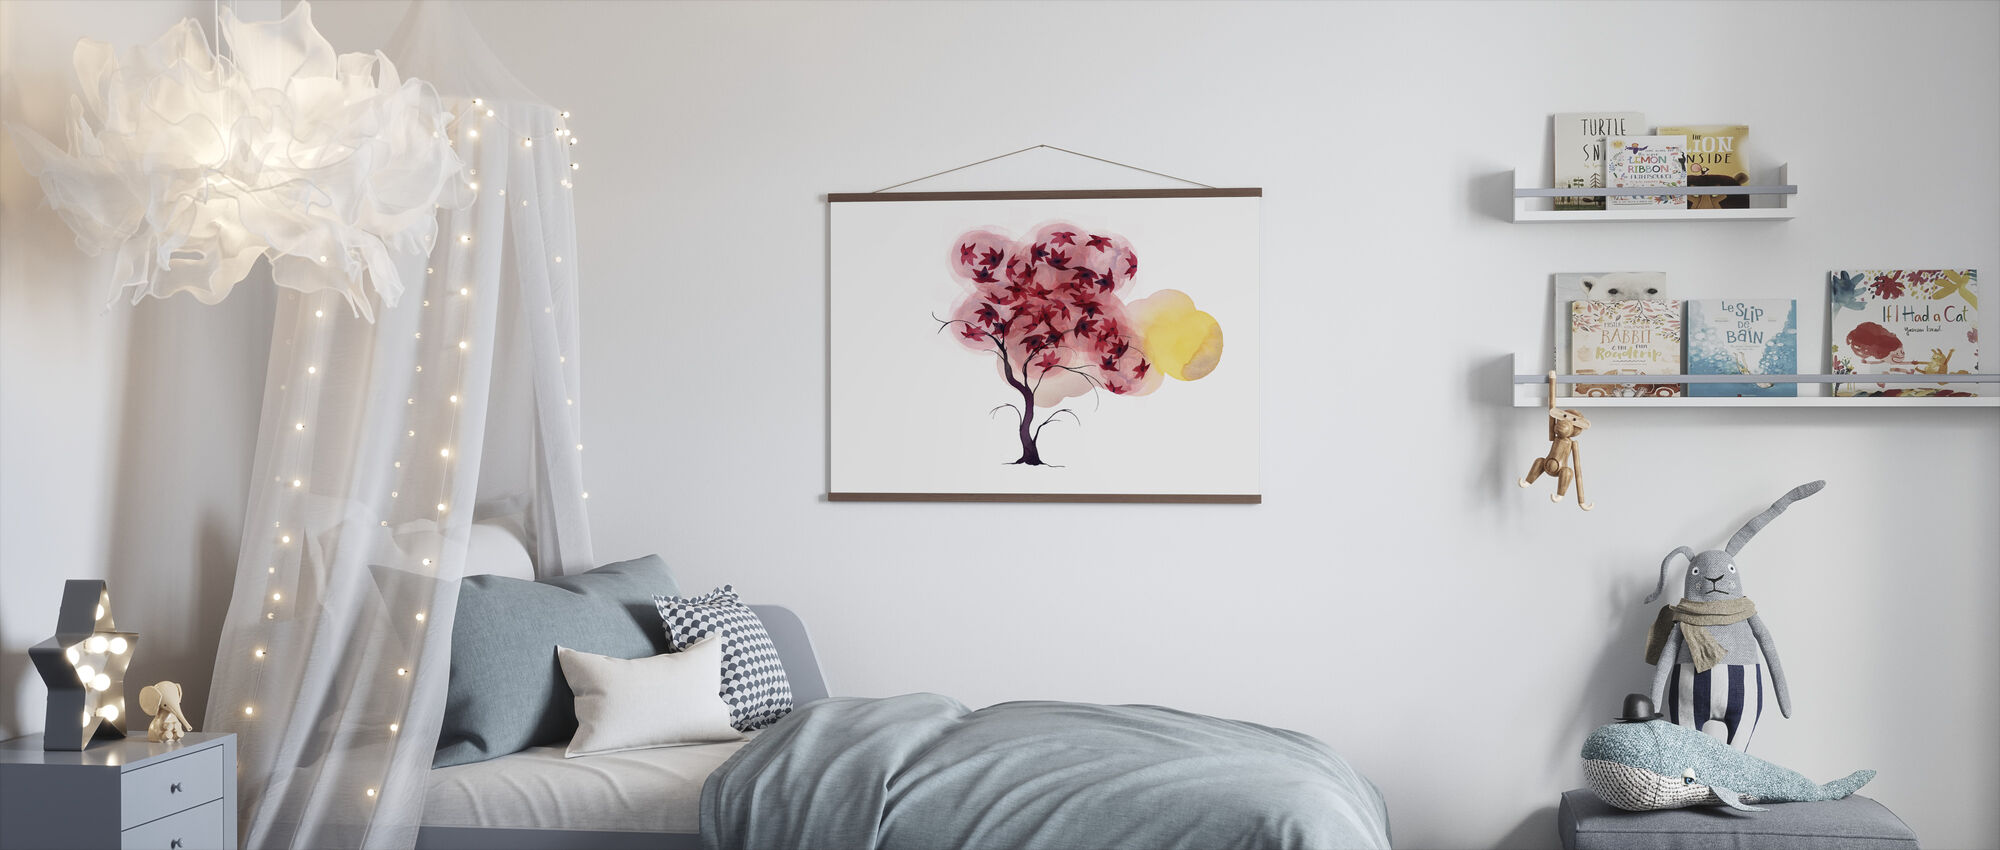 Water Color Trees II - Poster - Kids Room